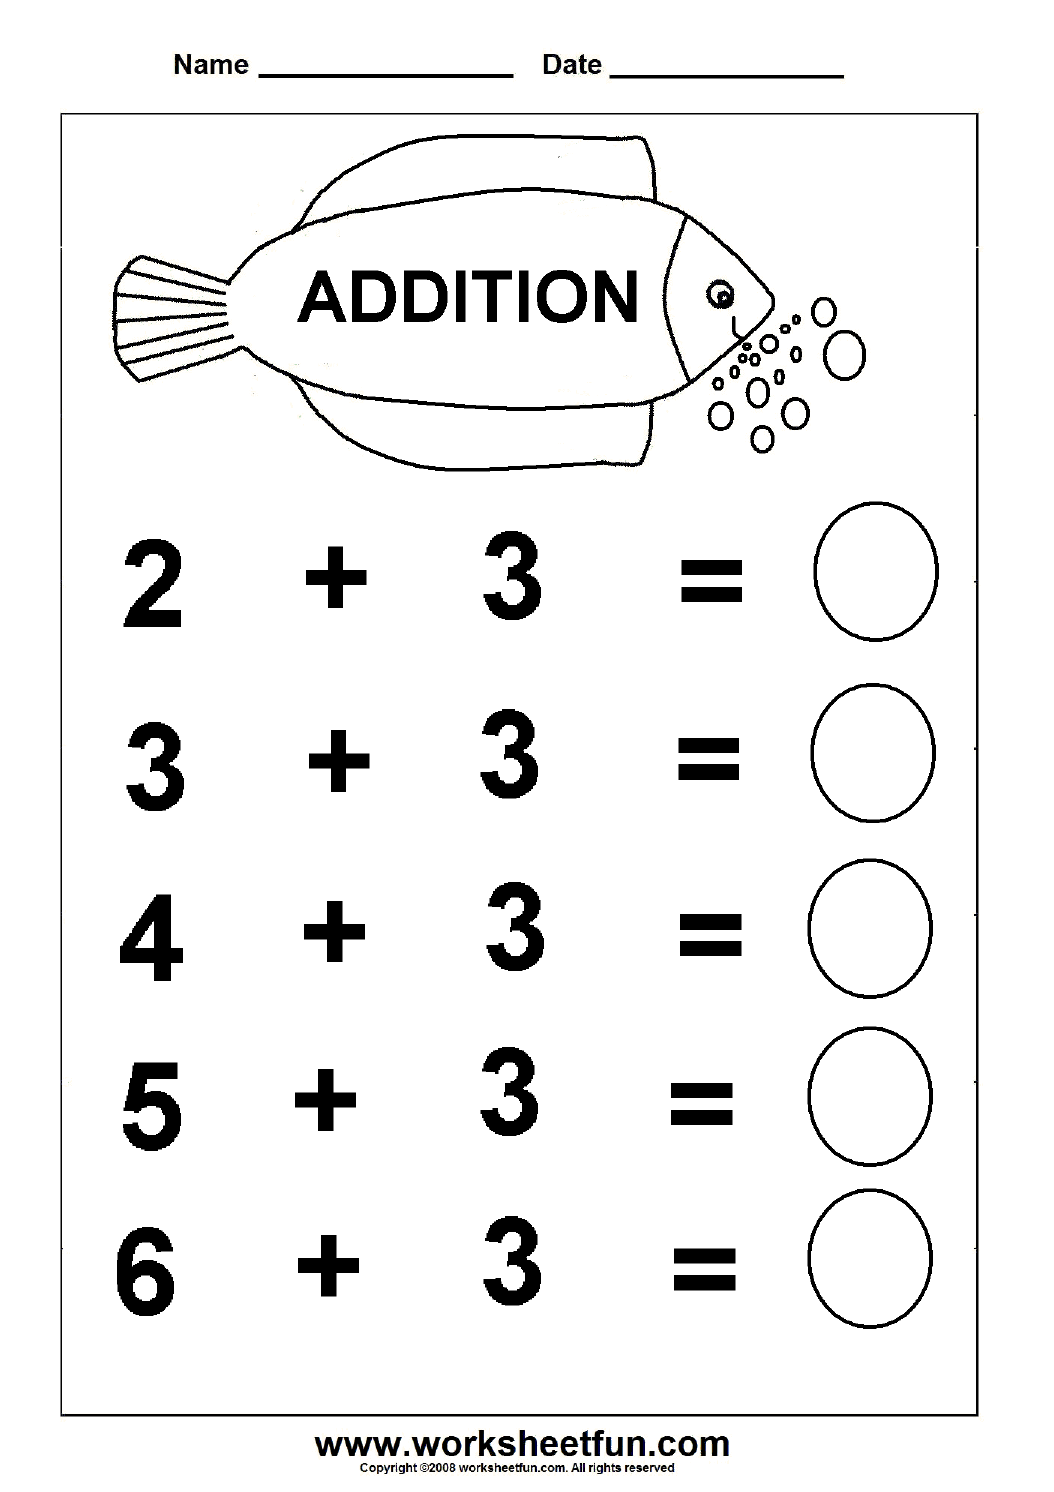 math worksheet : beginner addition  6 kindergarten addition worksheets  free  : Free Printable Subtraction Worksheets For Kindergarten